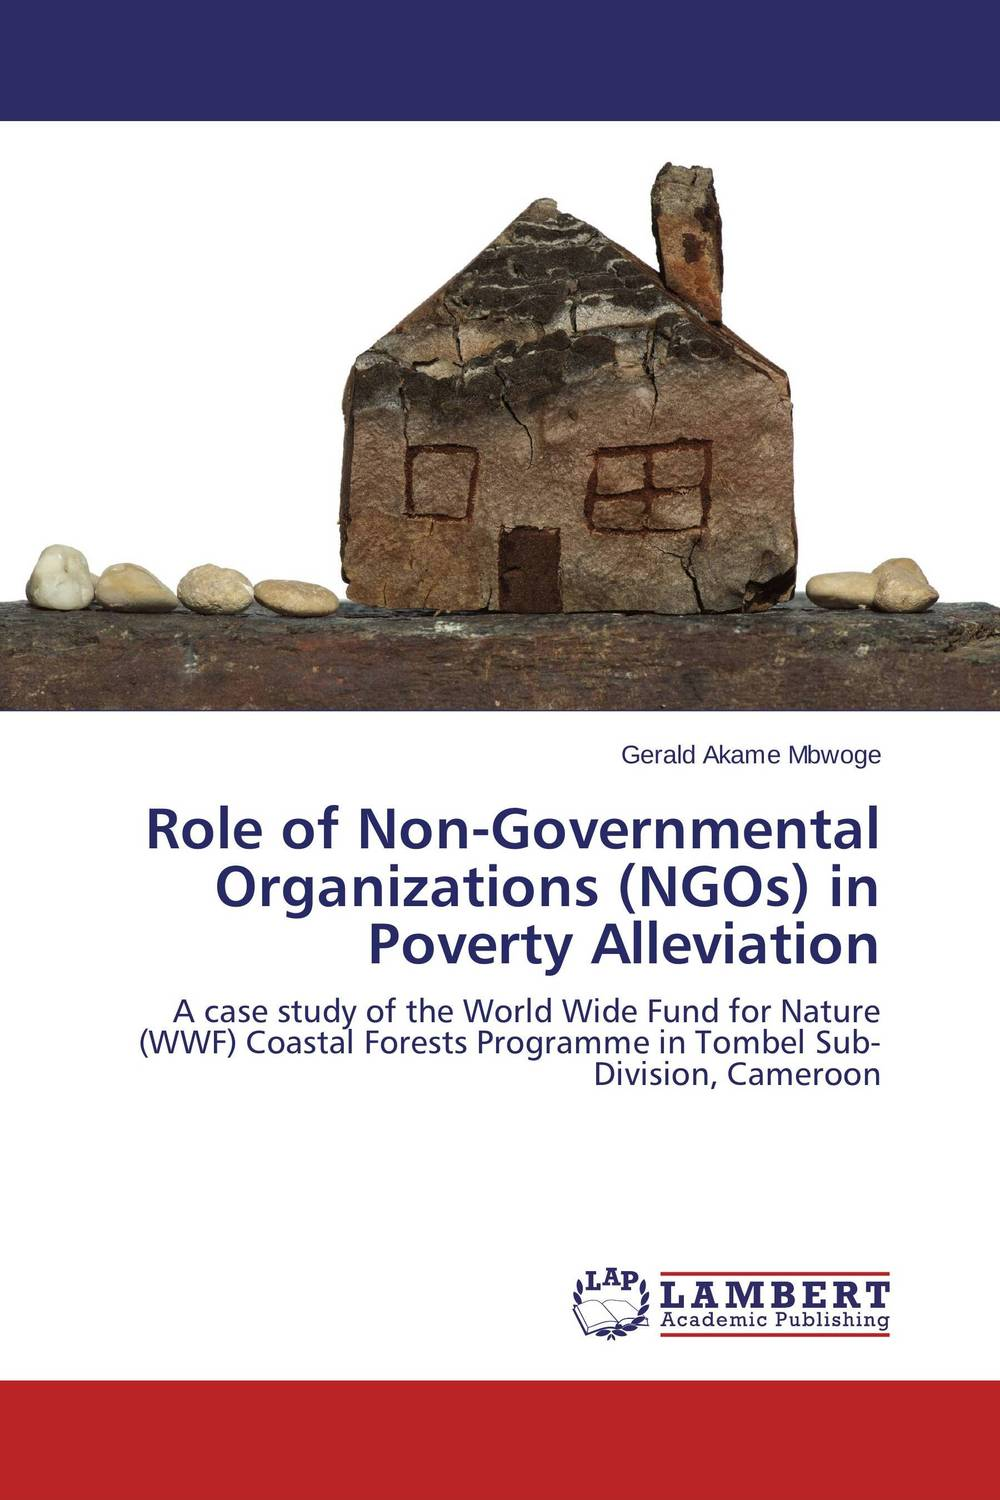 Role of Non-Governmental Organizations (NGOs) in Poverty Alleviation a role of tec a non receptor tyrosine kinase as apoptotic regulator